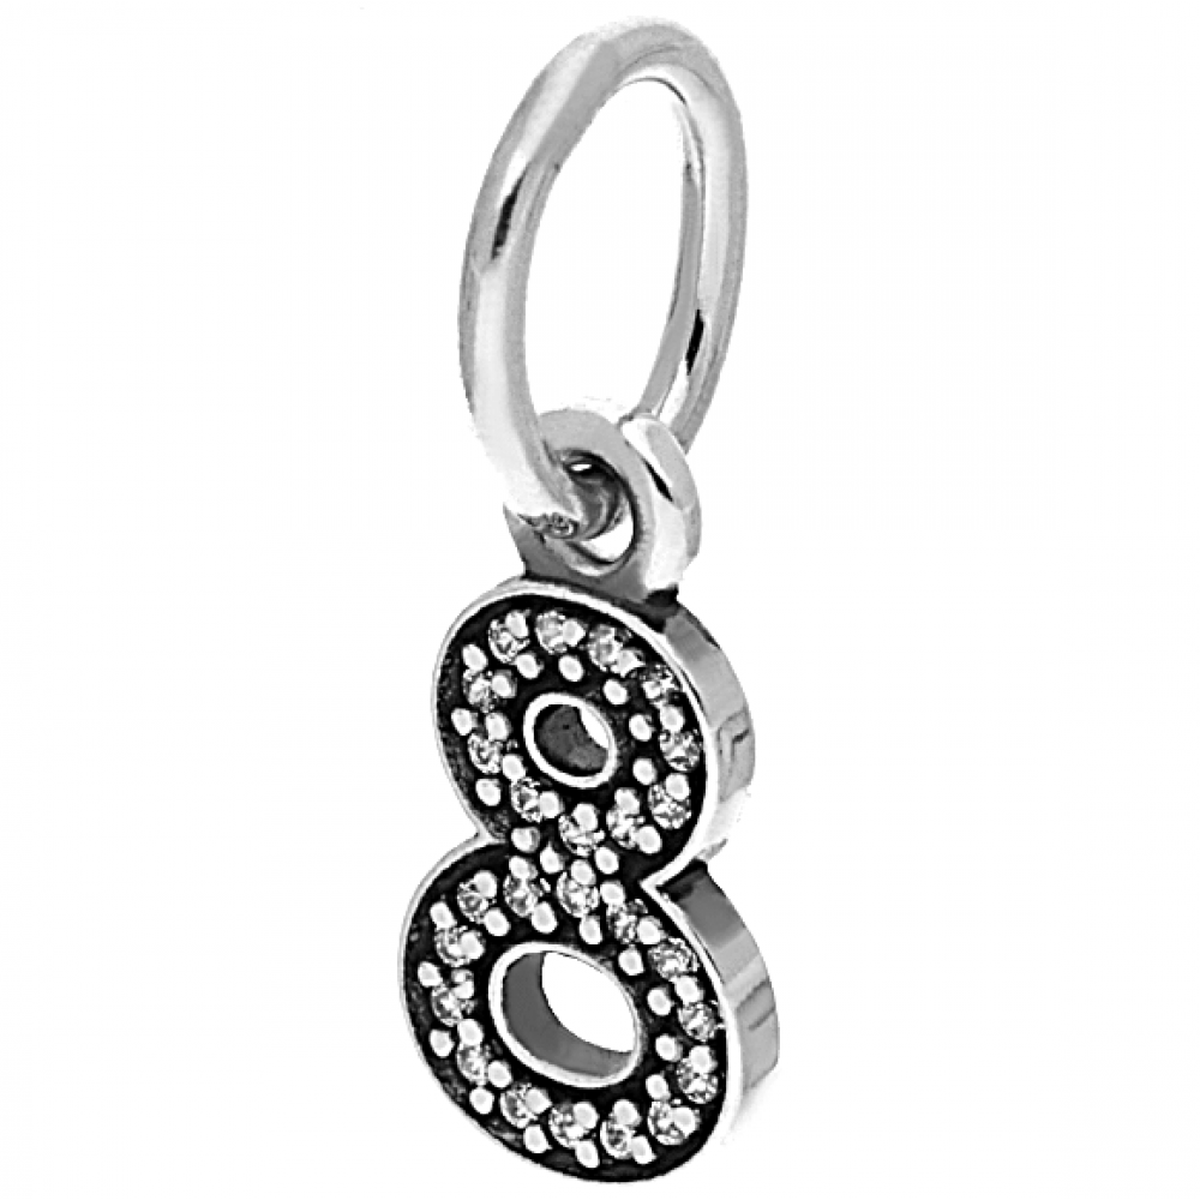 Number 8 Clear Cubic Zirconia Charm - 791346CZ - Pandora